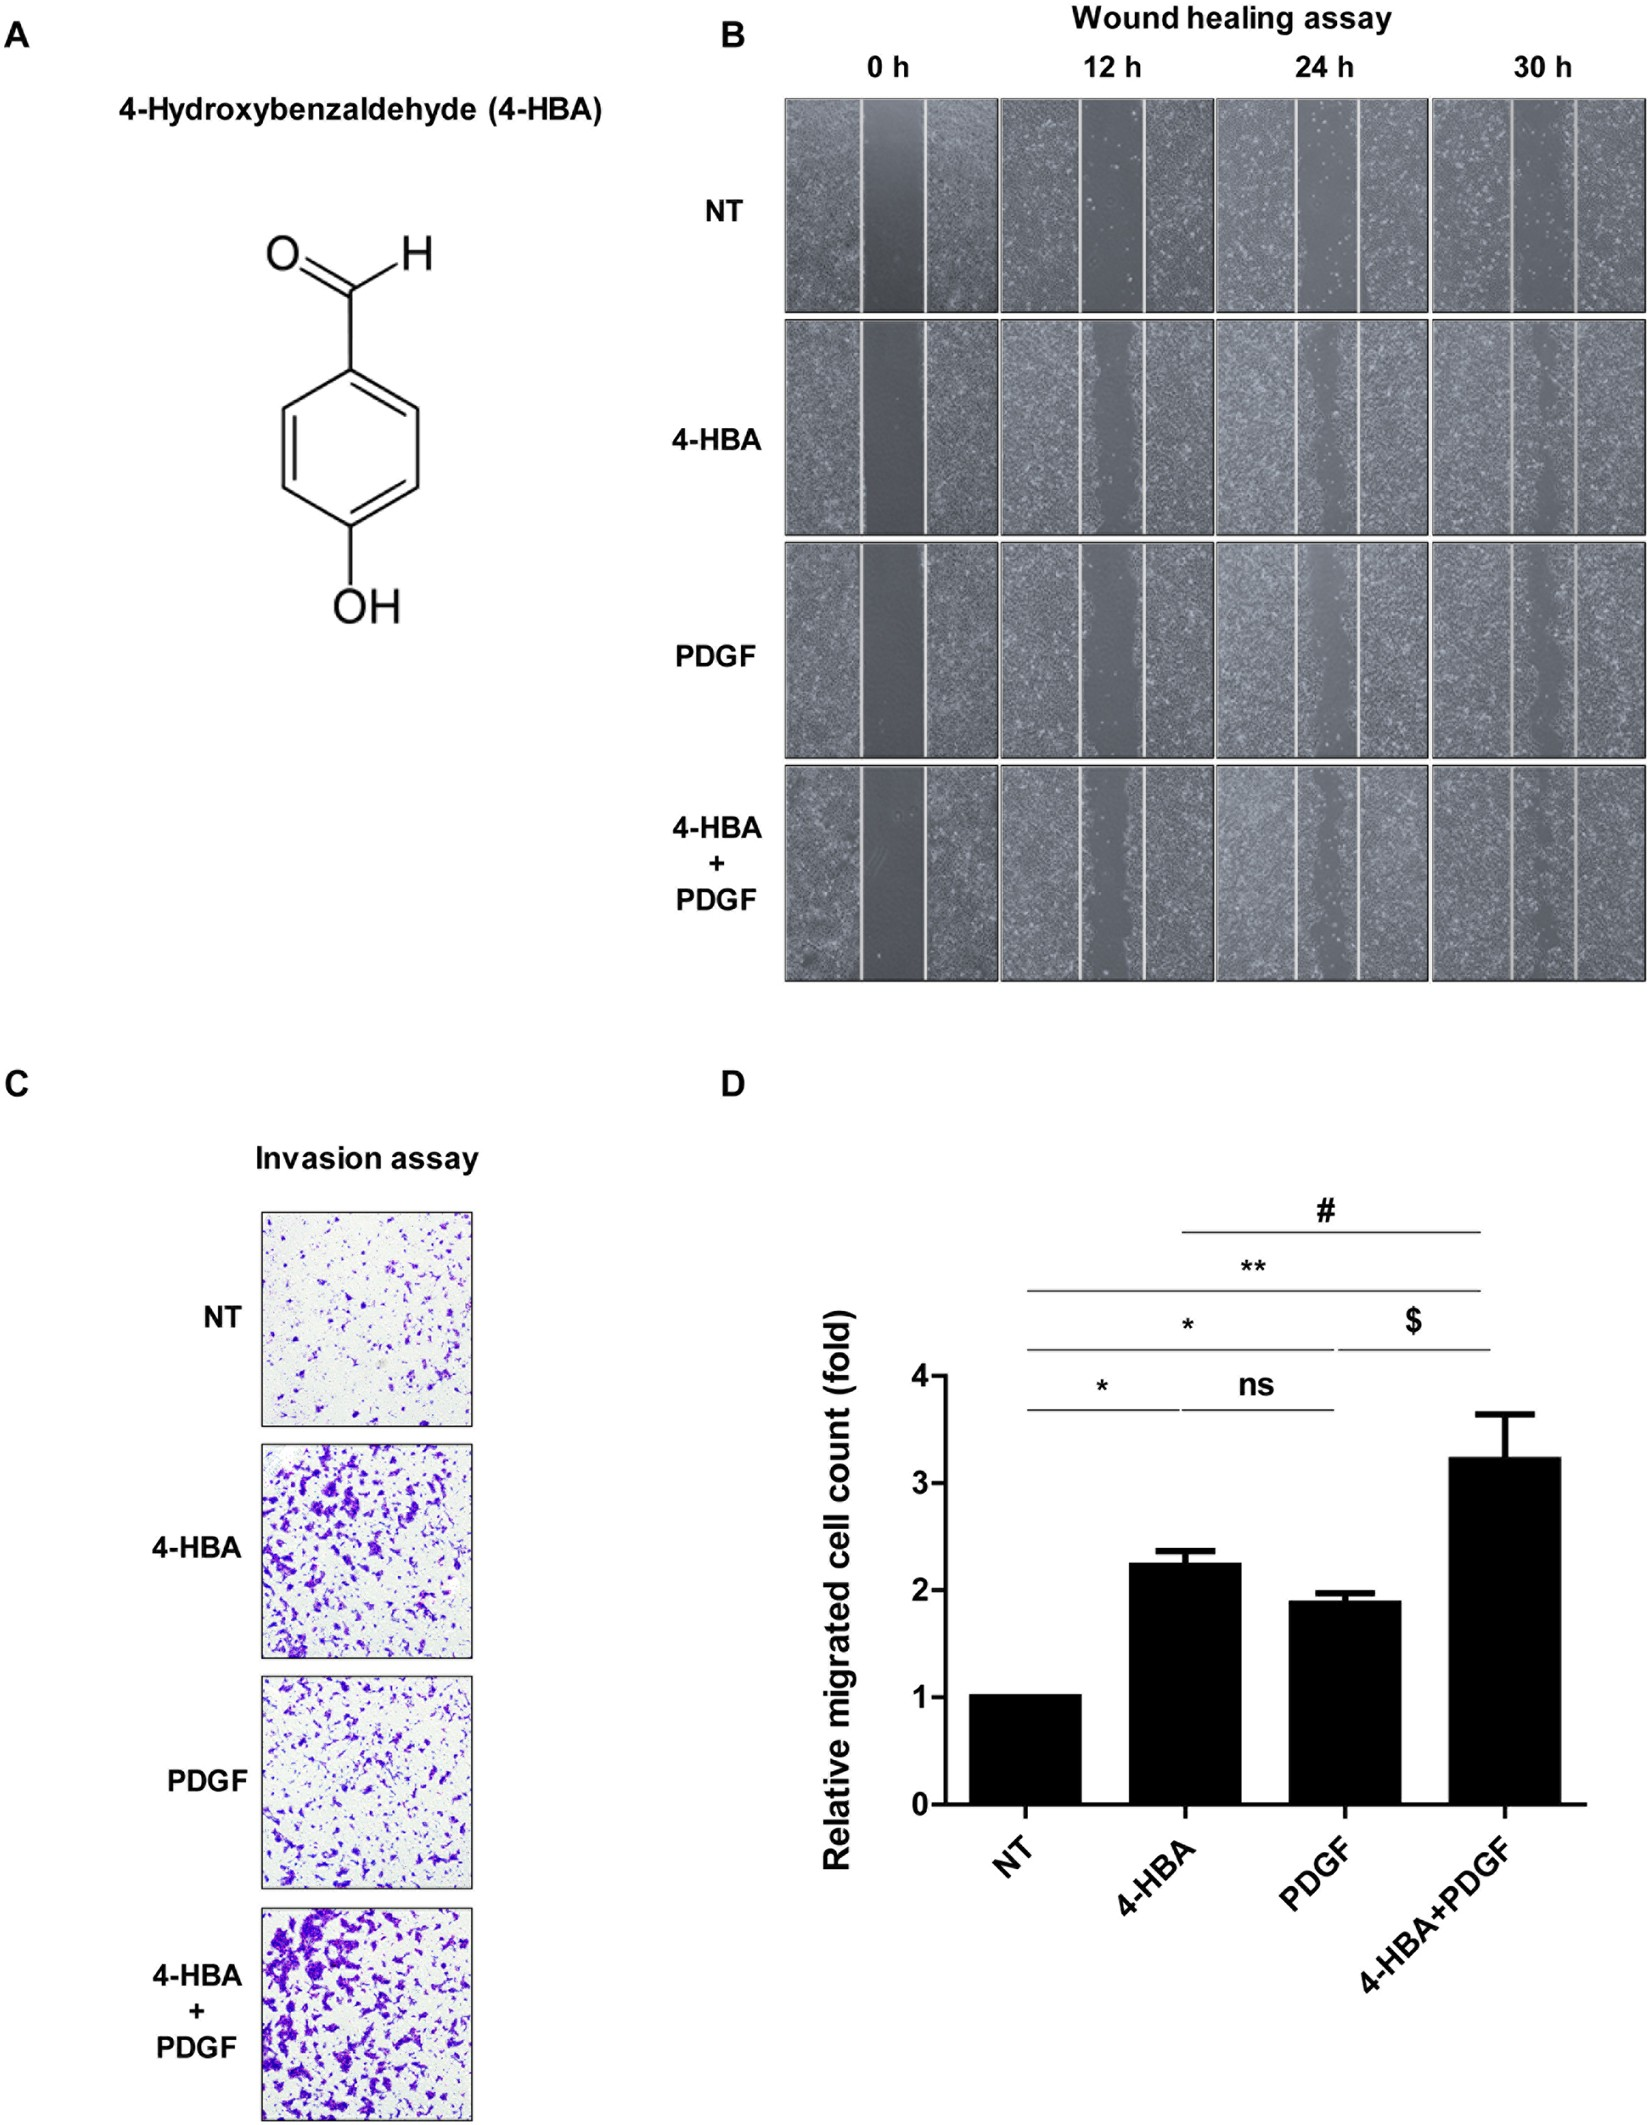 4-Hydroxybenzaldehyde accelerates acute wound healing